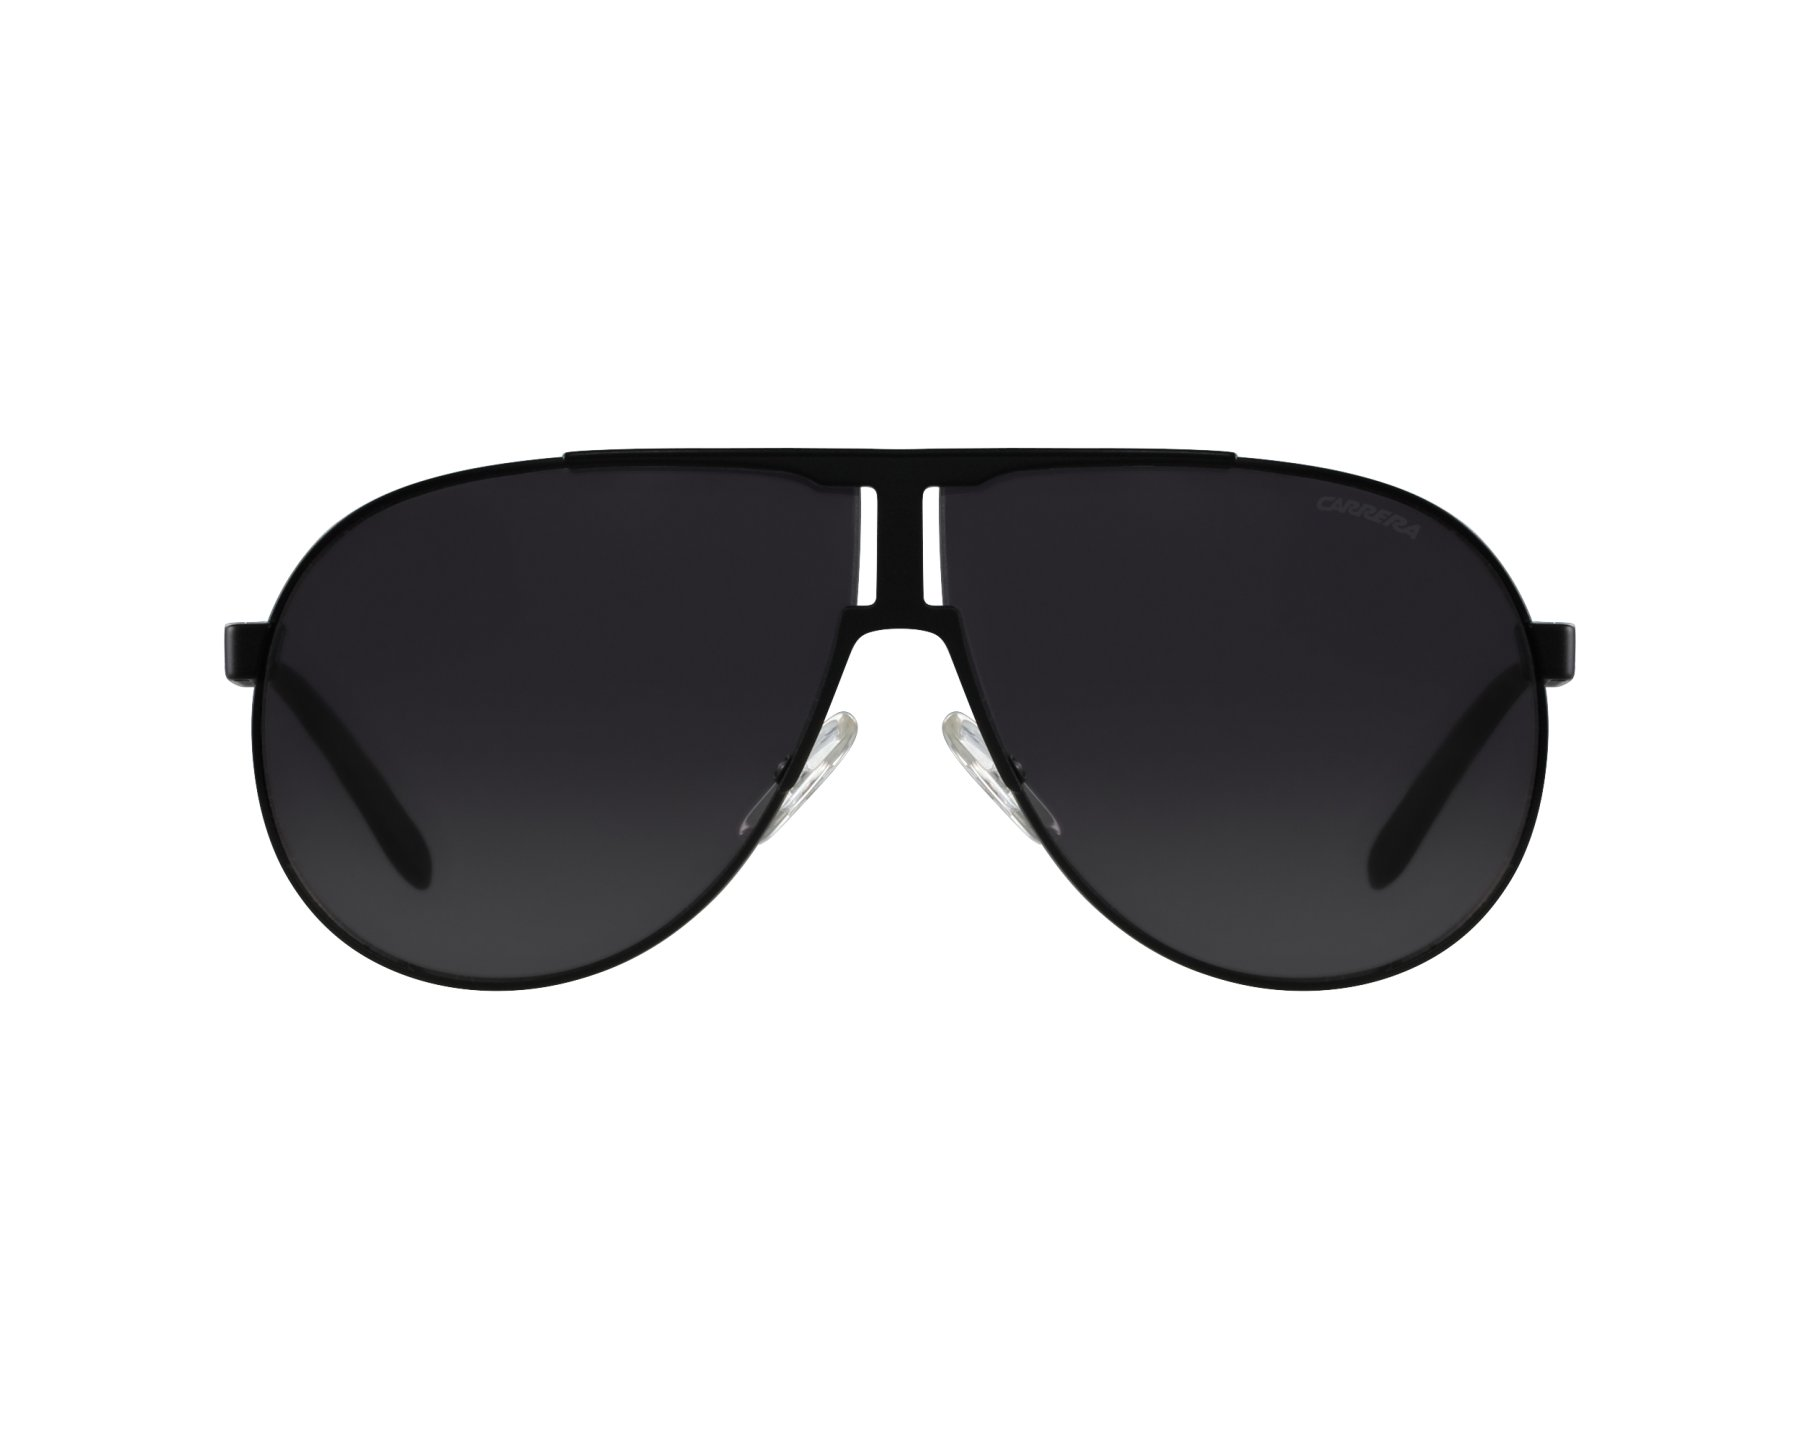 c9aa737788 Sunglasses Carrera New-Panamerika 003 - Black profile view